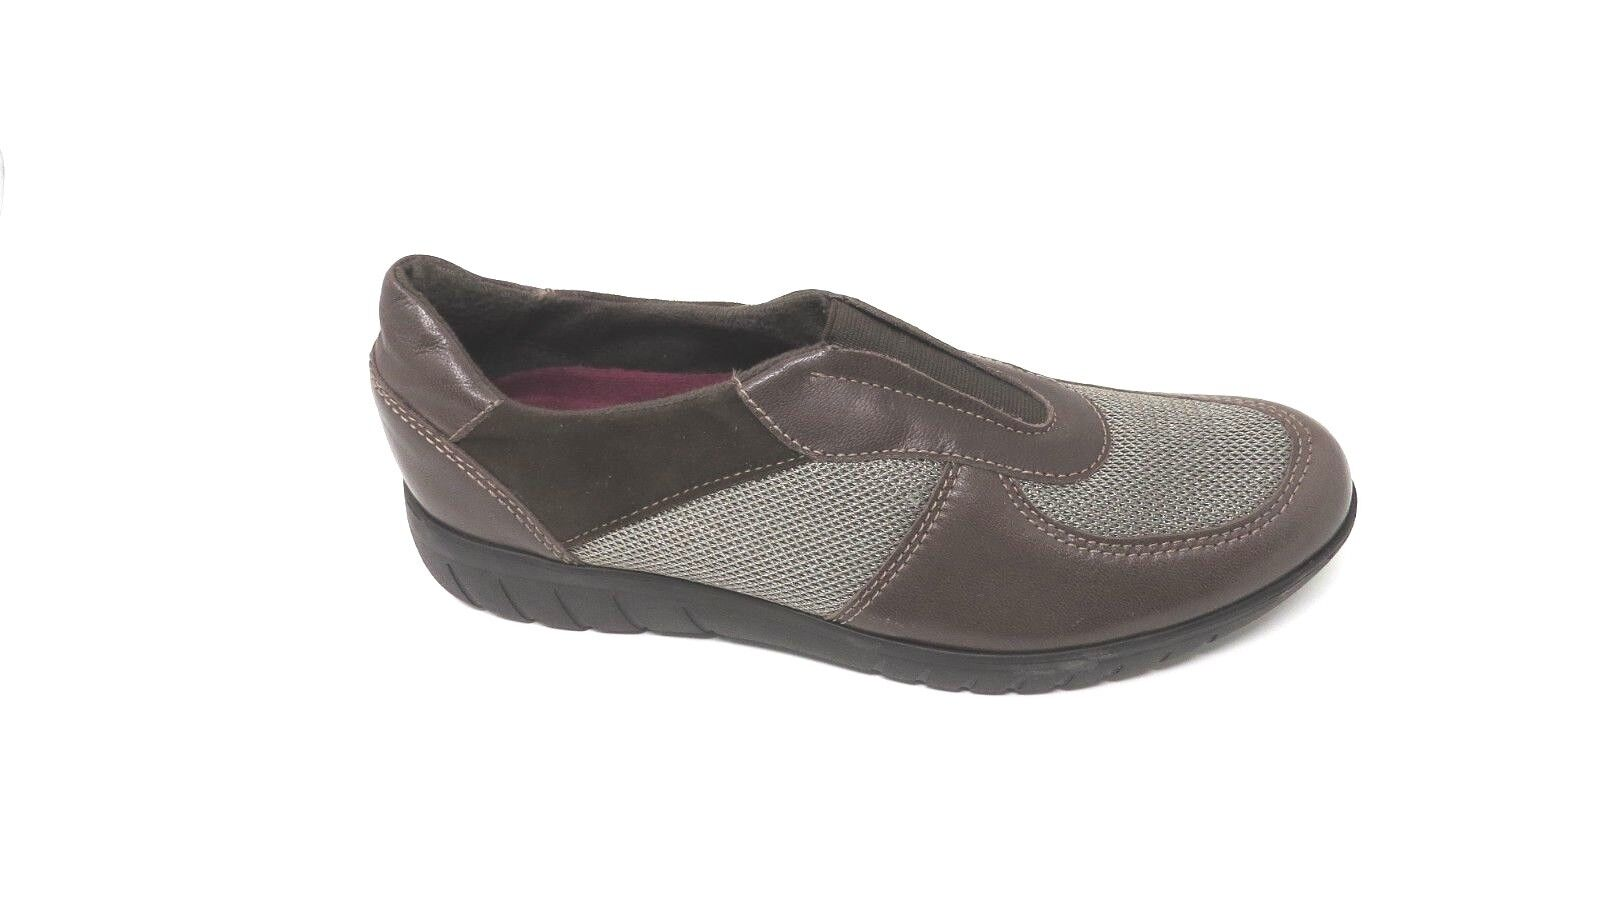 Munro marron Couleur Leather Mesh Slip On baskets  chaussures femmes Taille 7